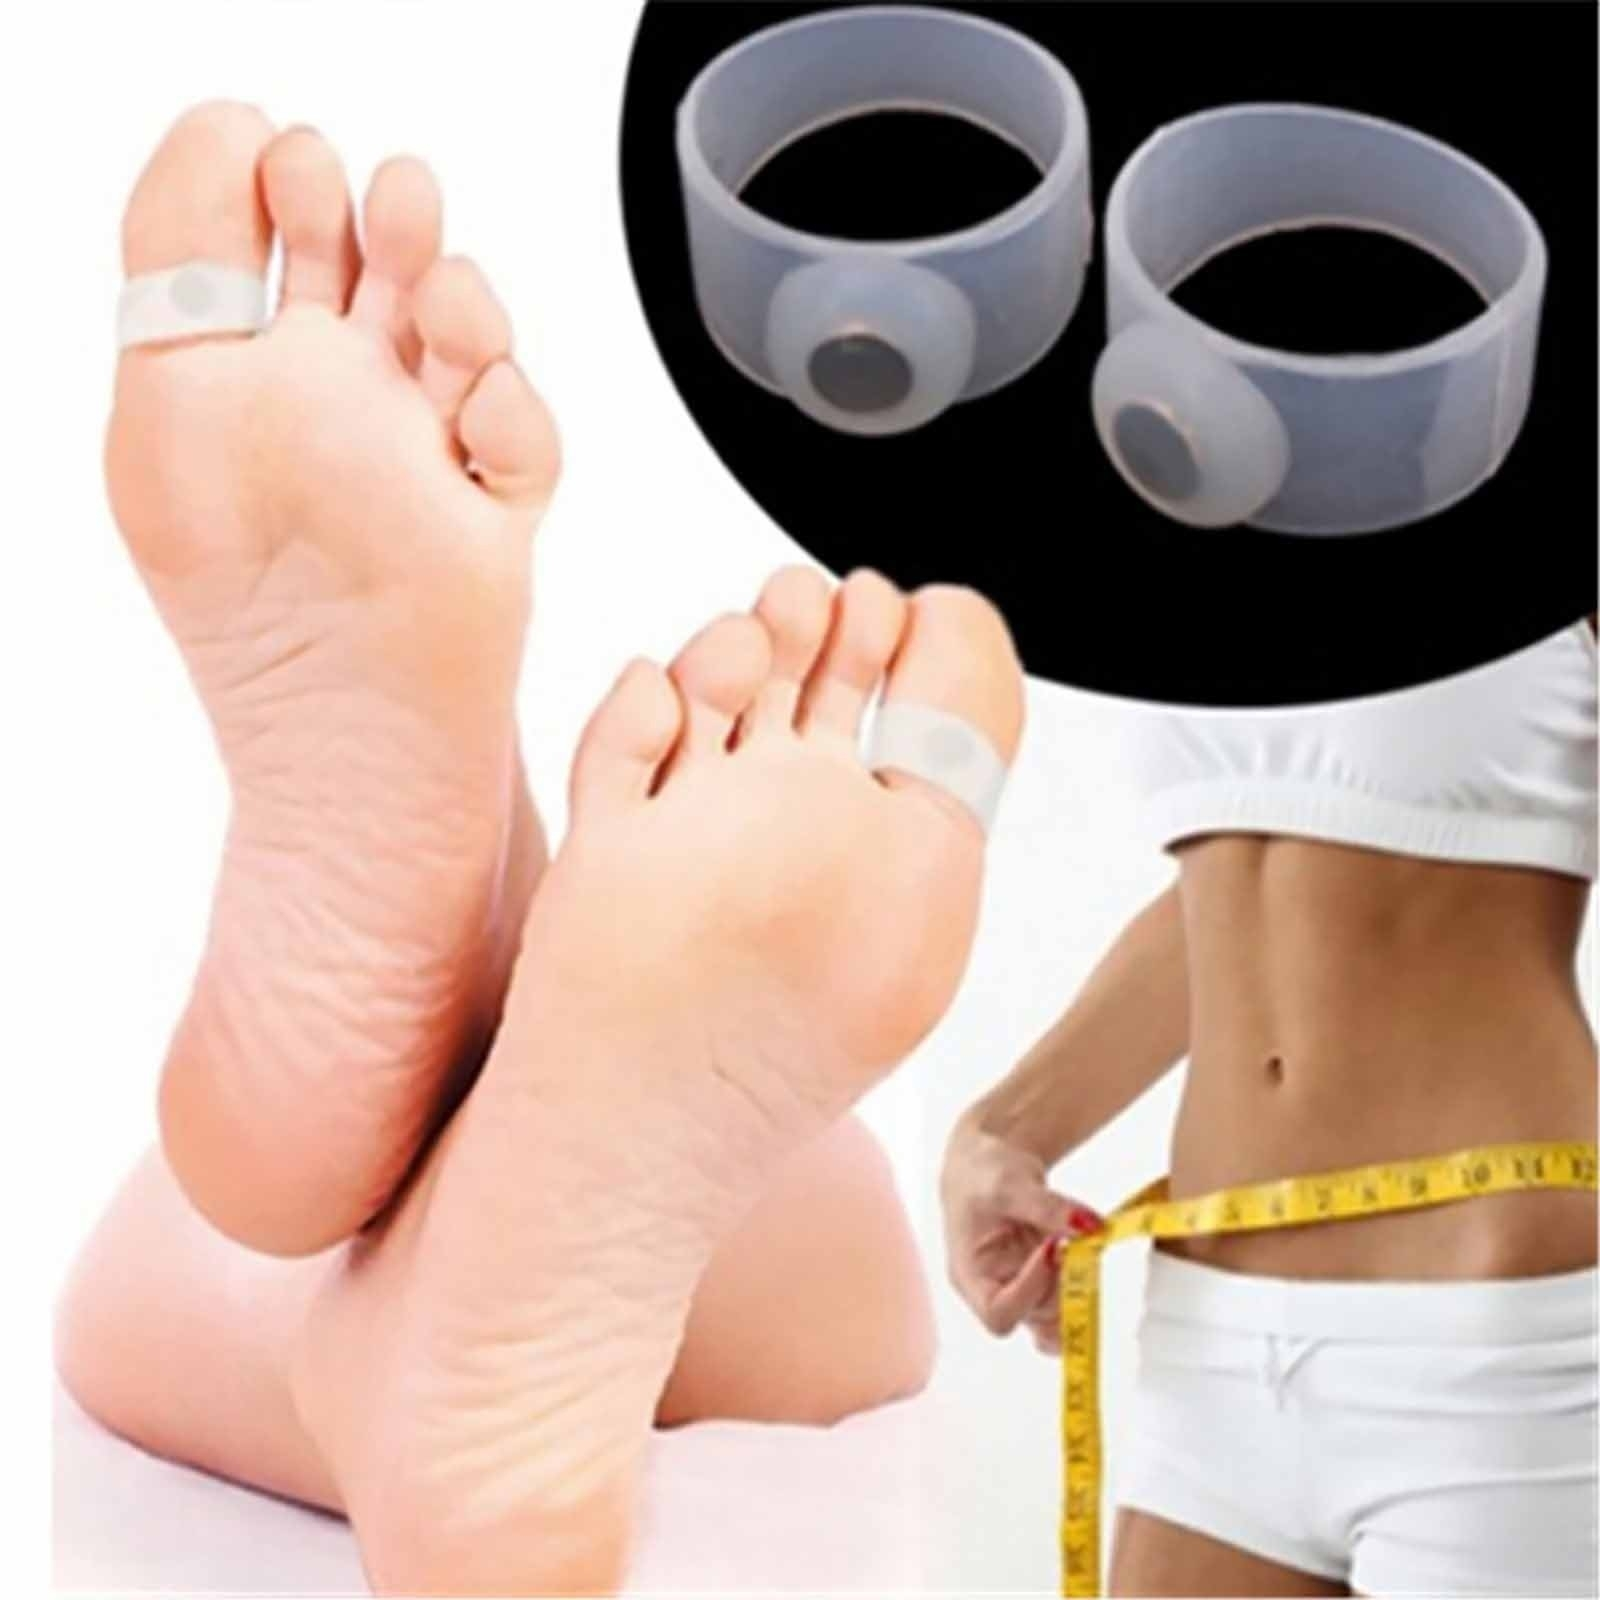 2x Healthy Keep Fit Slimming Body Shape Weight Lose Silicone Toe For Current Slimming Toe Rings (View 14 of 15)